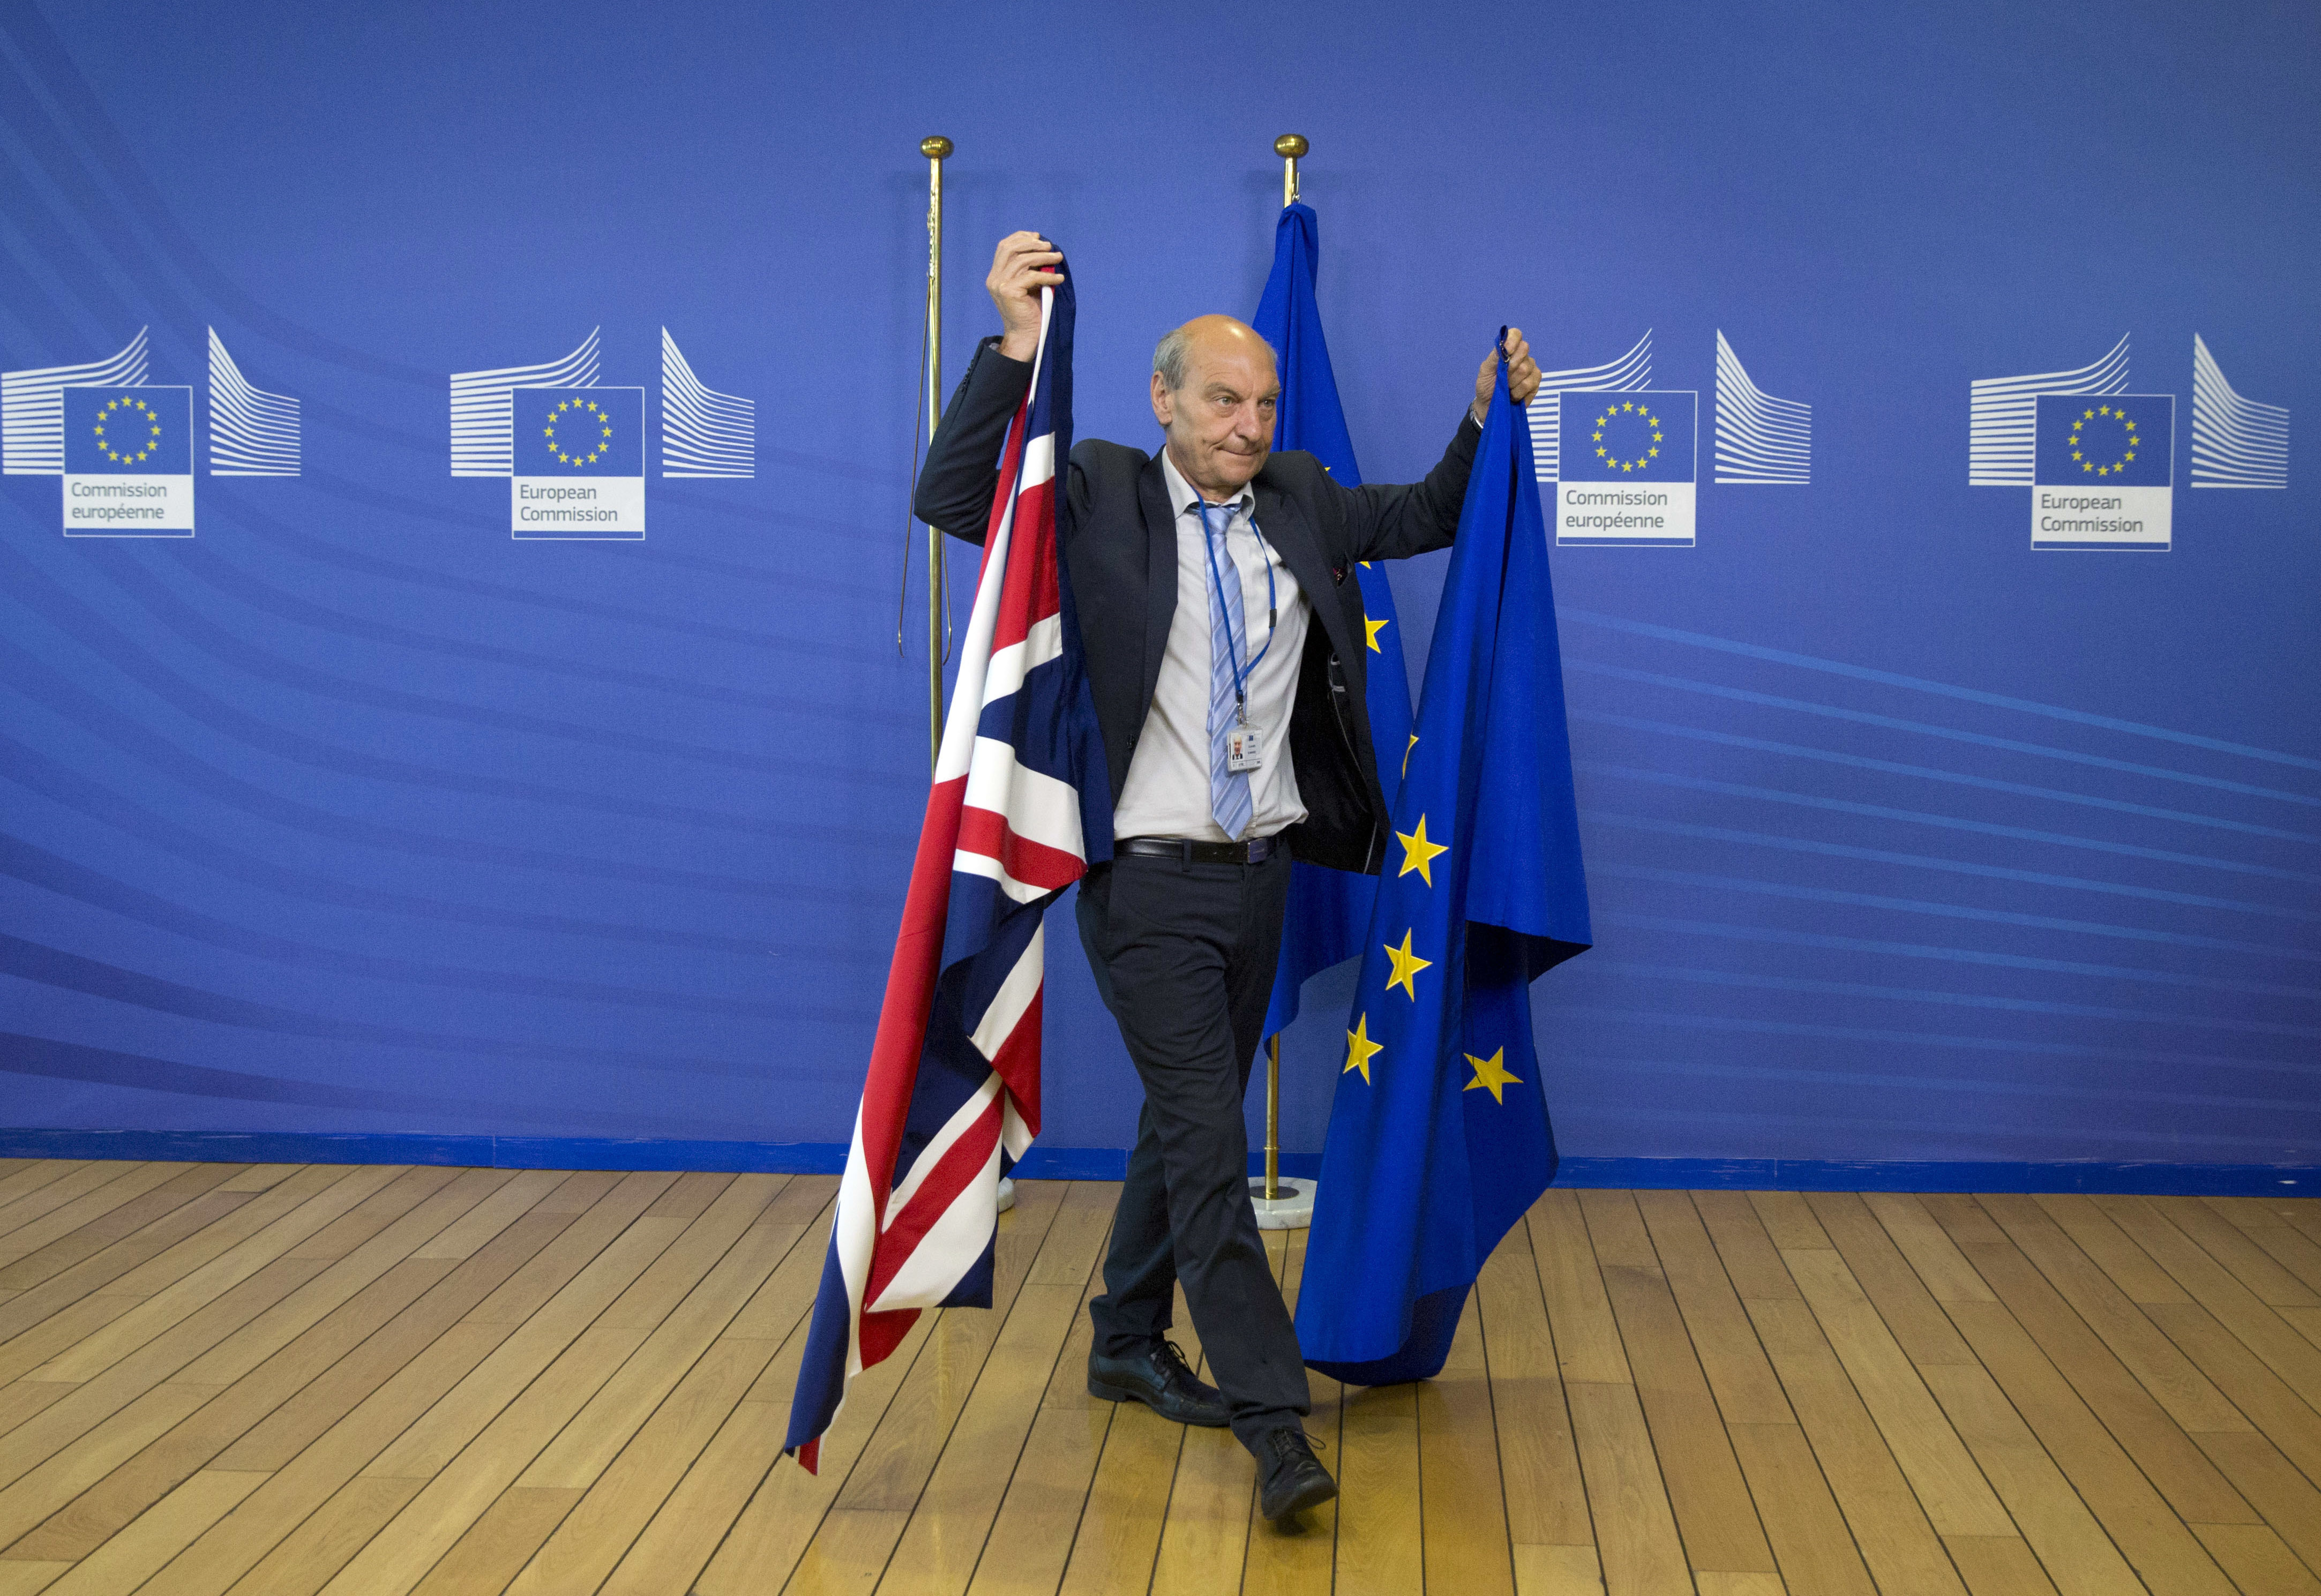 In this June 19, 2017, file photo, a member of protocol changes the EU and British flags at EU headquarters in Brussels. On Tuesday, January 15, 2019, British lawmakers overwhelmingly rejected Prime Minister Theresa May's divorce deal with the EU plunging the Brexit process into chaos